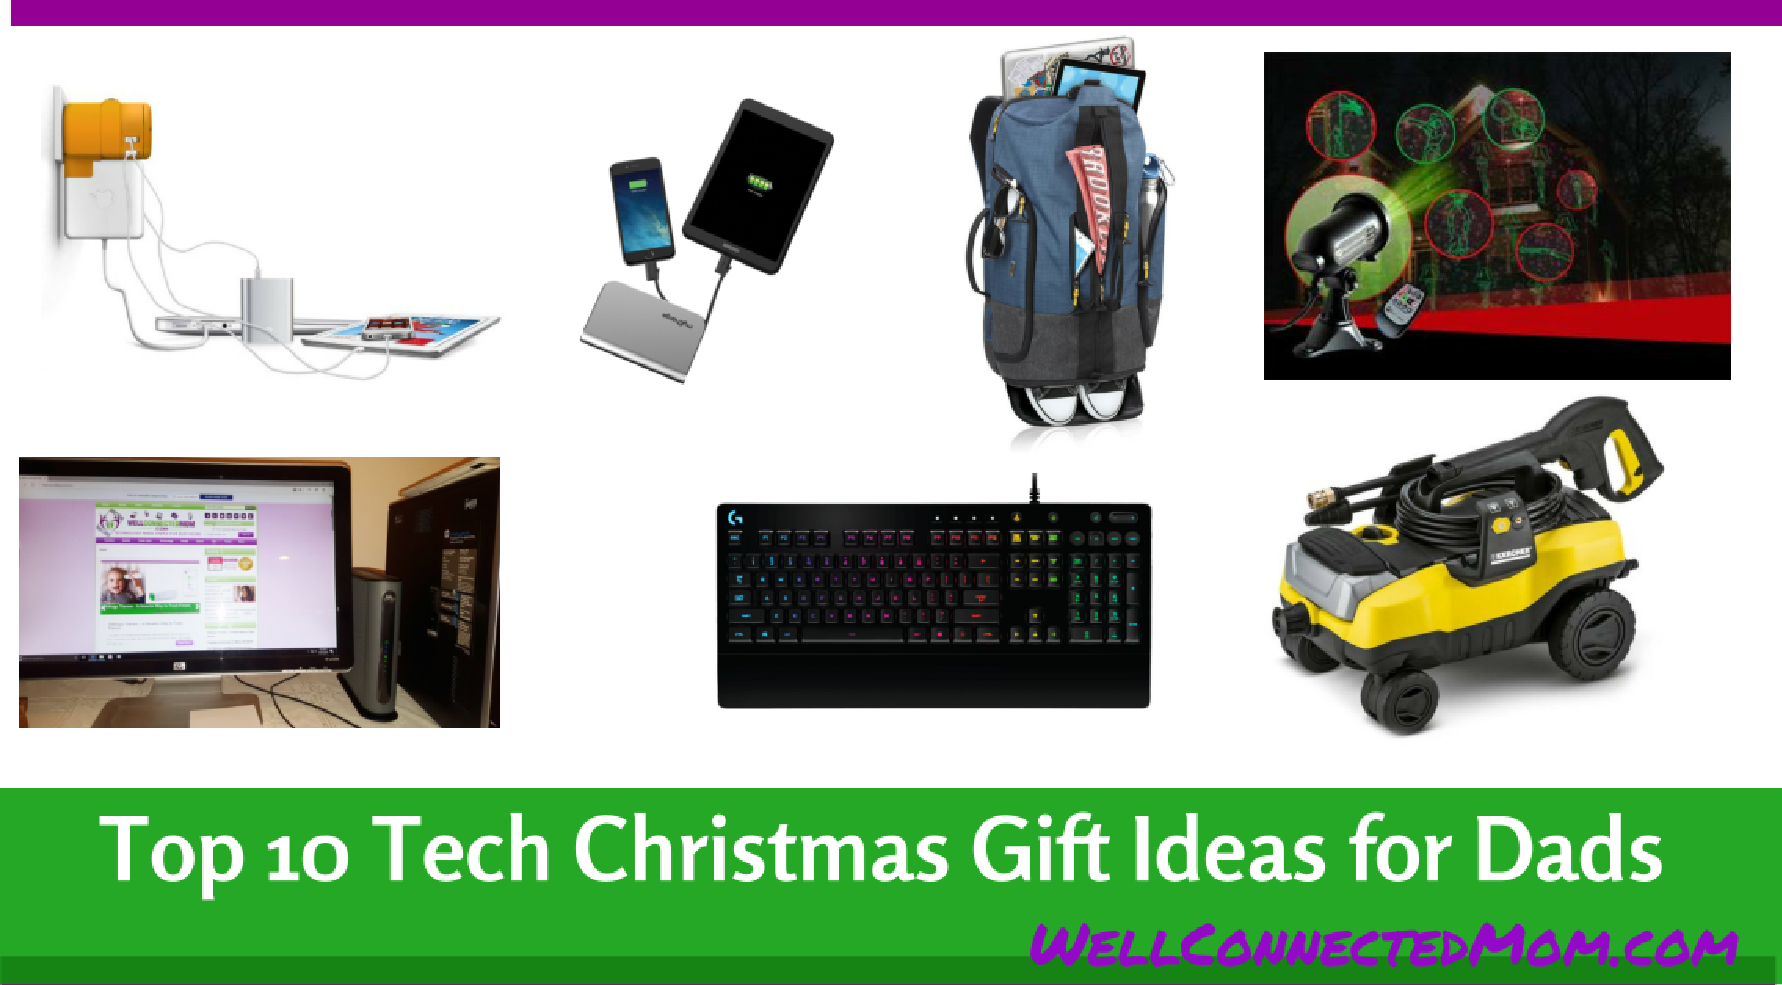 Top 10 Tech Christmas Gift Ideas for Dads - The Well ...